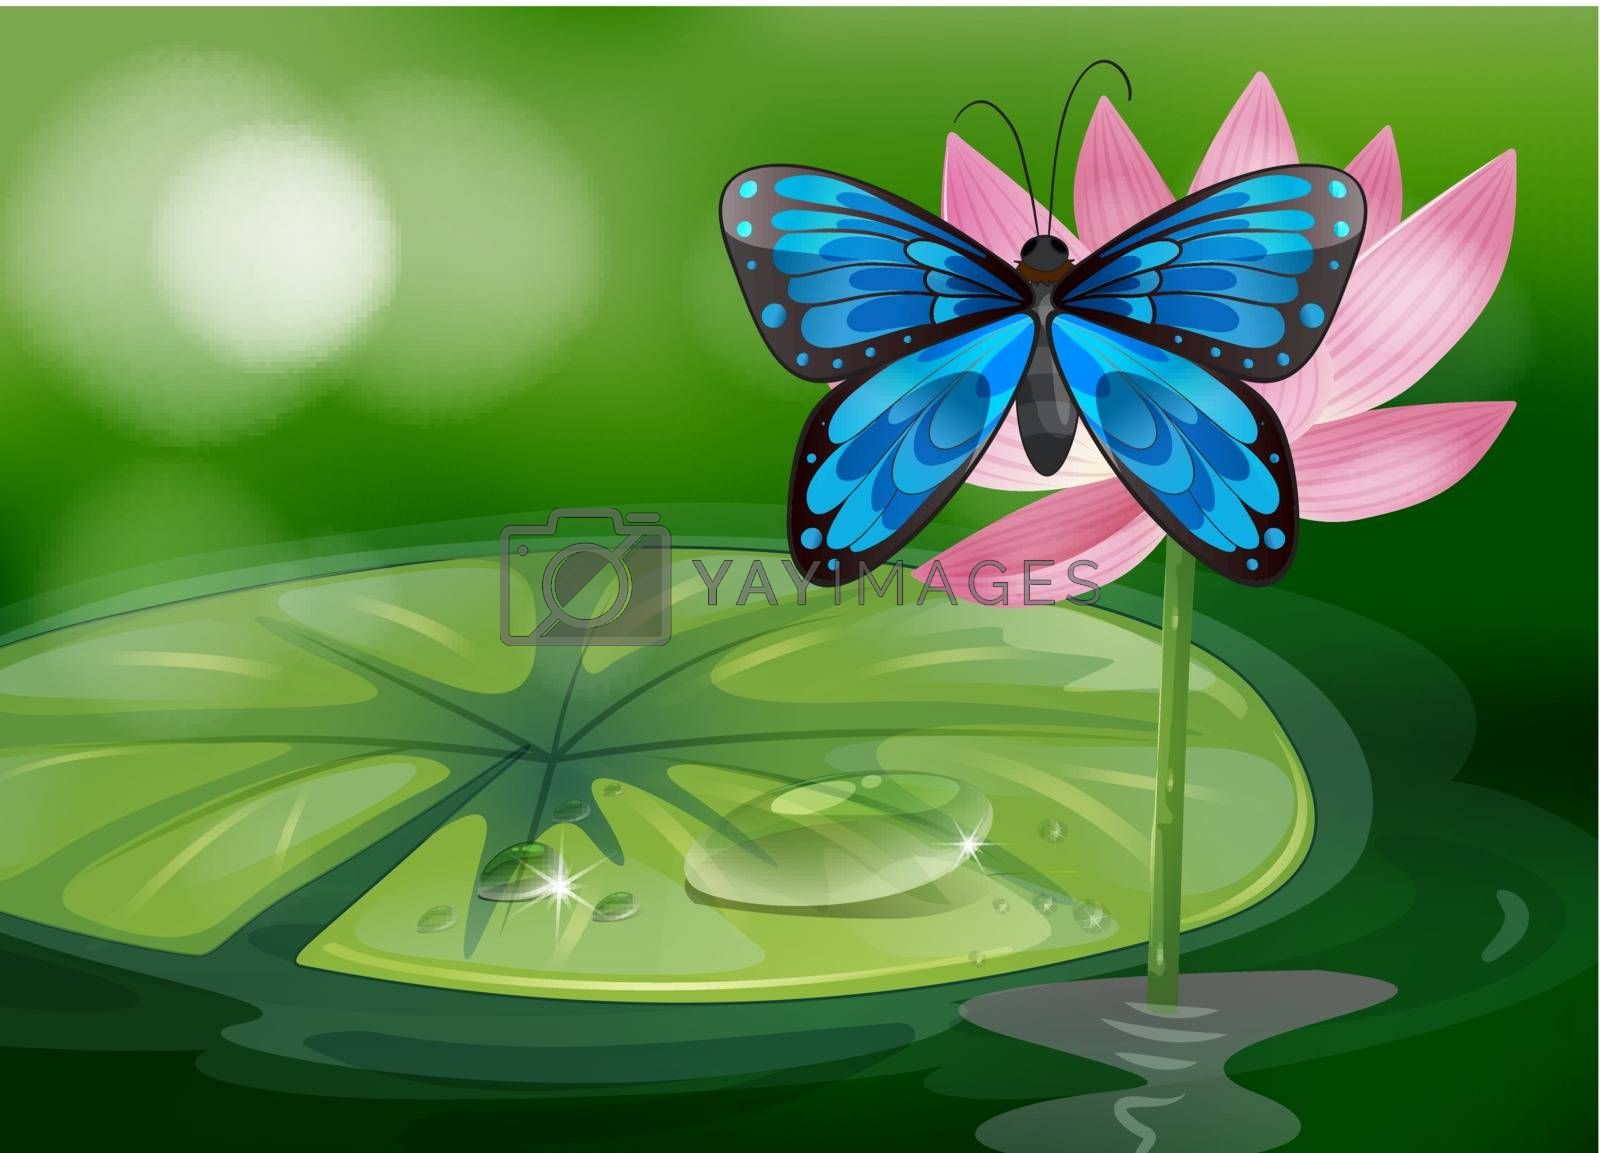 Royalty free image of A blue butterfly and the pink flower at the pond by iimages